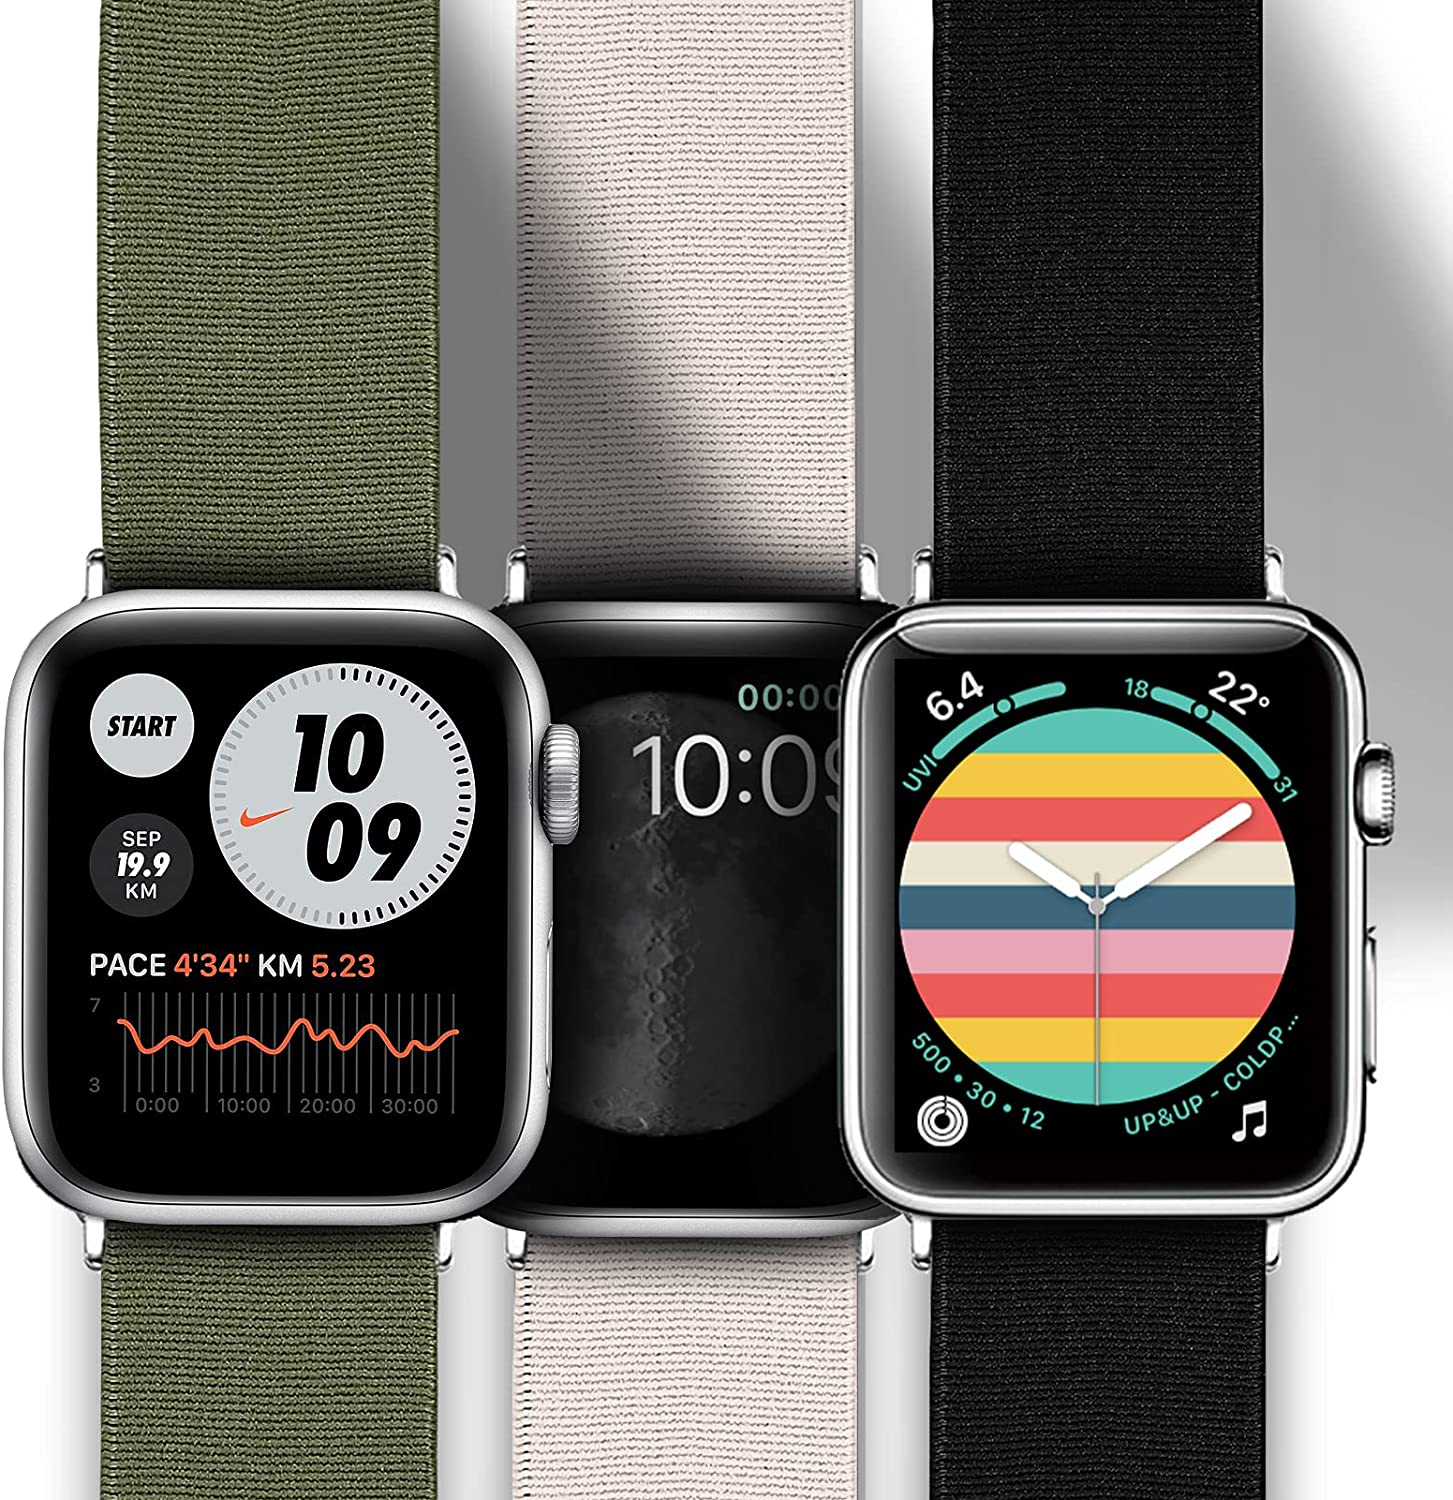 Joyozy Stretchy Loop Bands Compatible with Apple Watch Band 40mm 38mm 42mm 44mm, Elastic Adjustable Wristband for iWatch Series 6/5/4/3/2/1